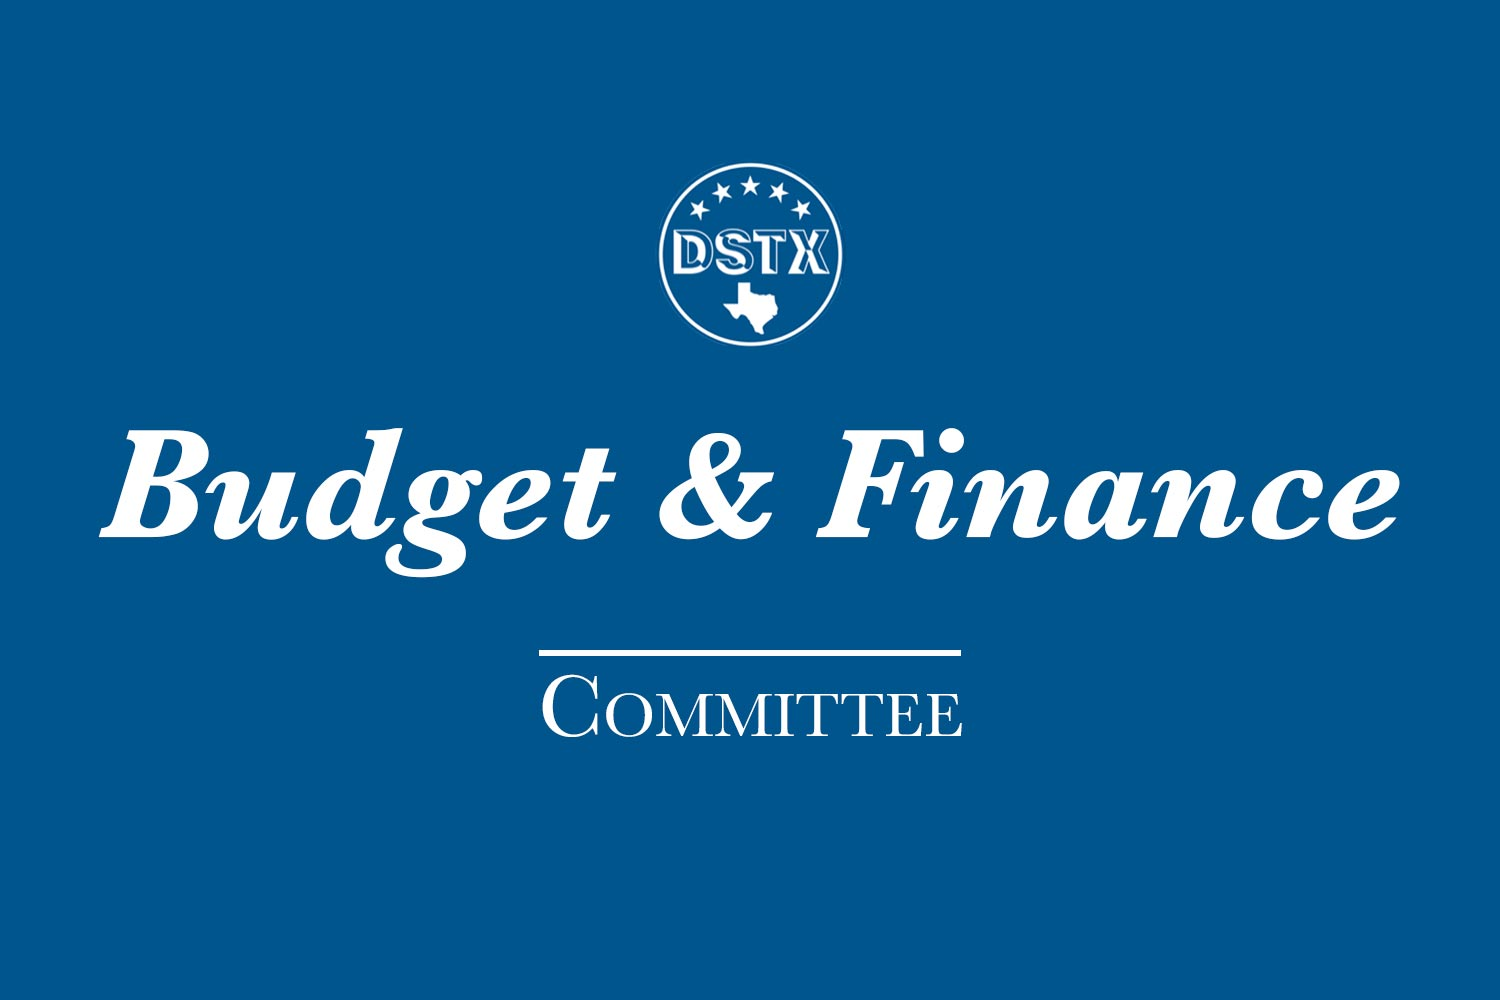 Budget & Finance Committee